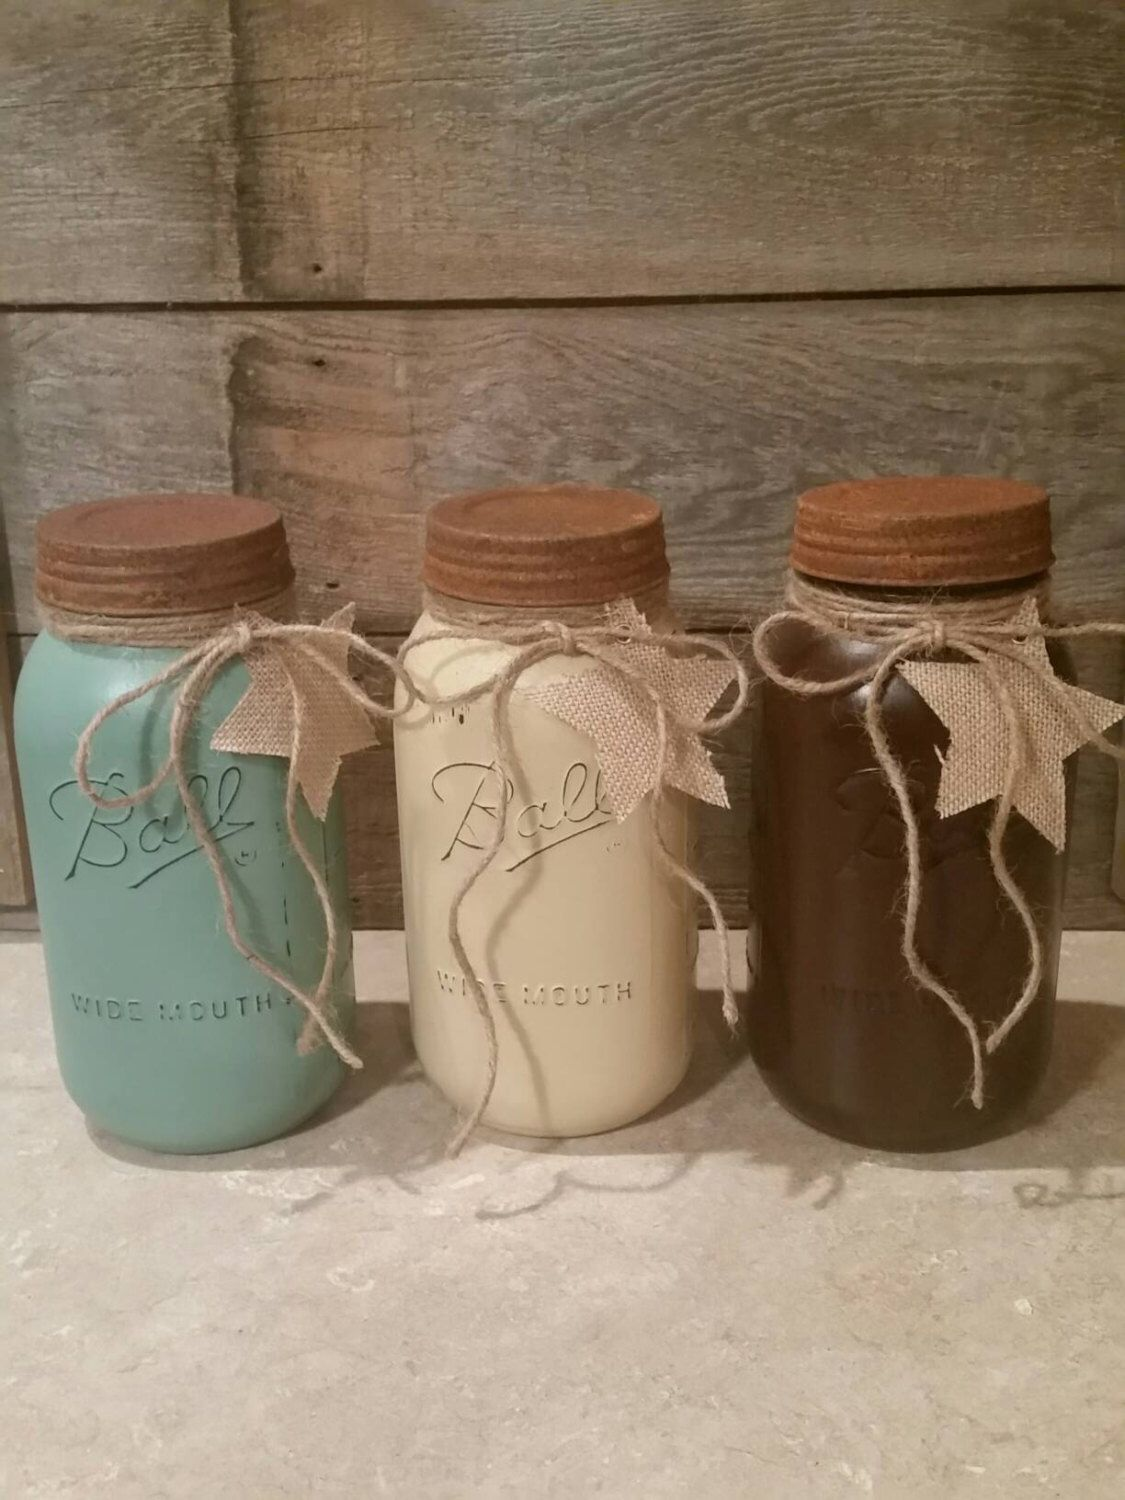 Rustic Kitchen Canister Sets Mason Jar Canisters Ball Jar Canisters Mason Jar Kitchen Decor